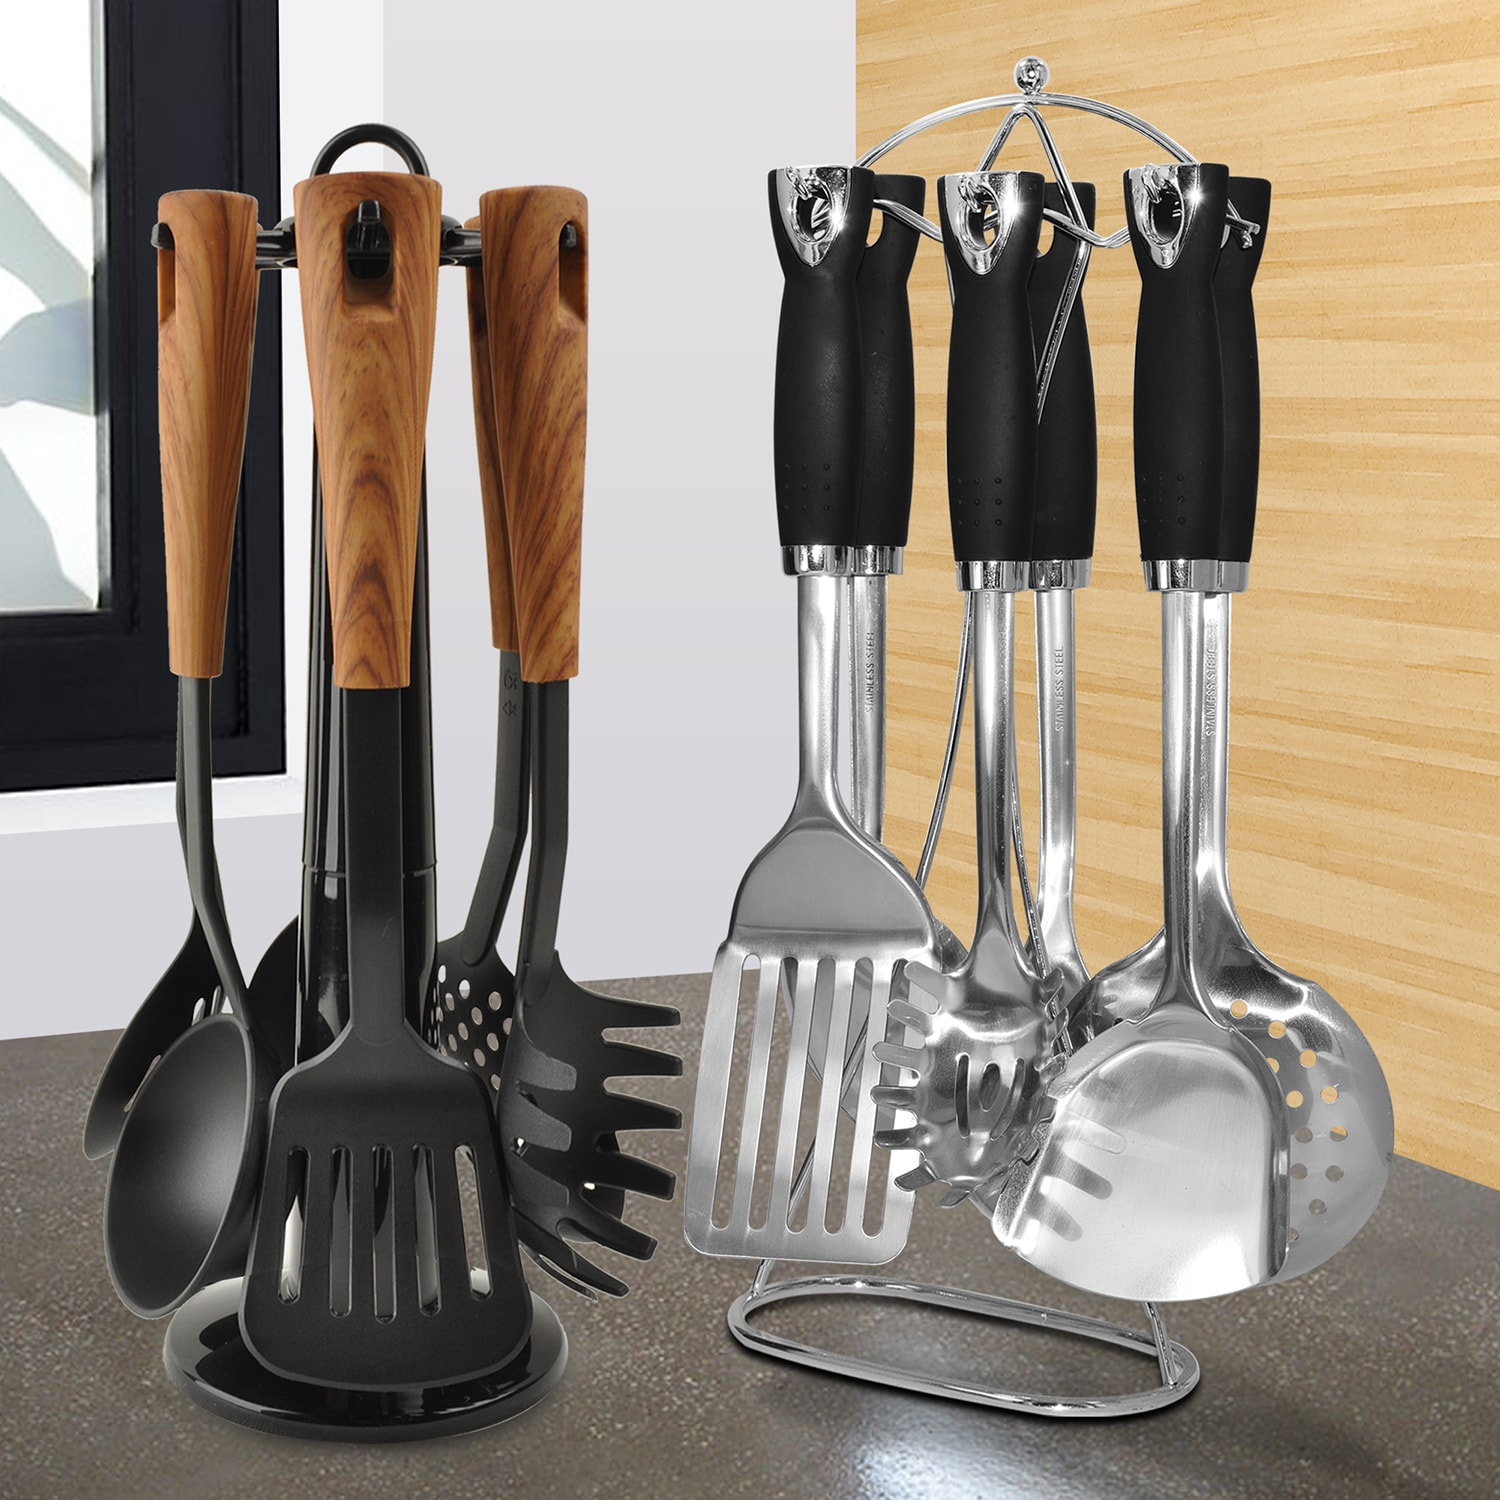 Masflex Kitchen Utensils Set